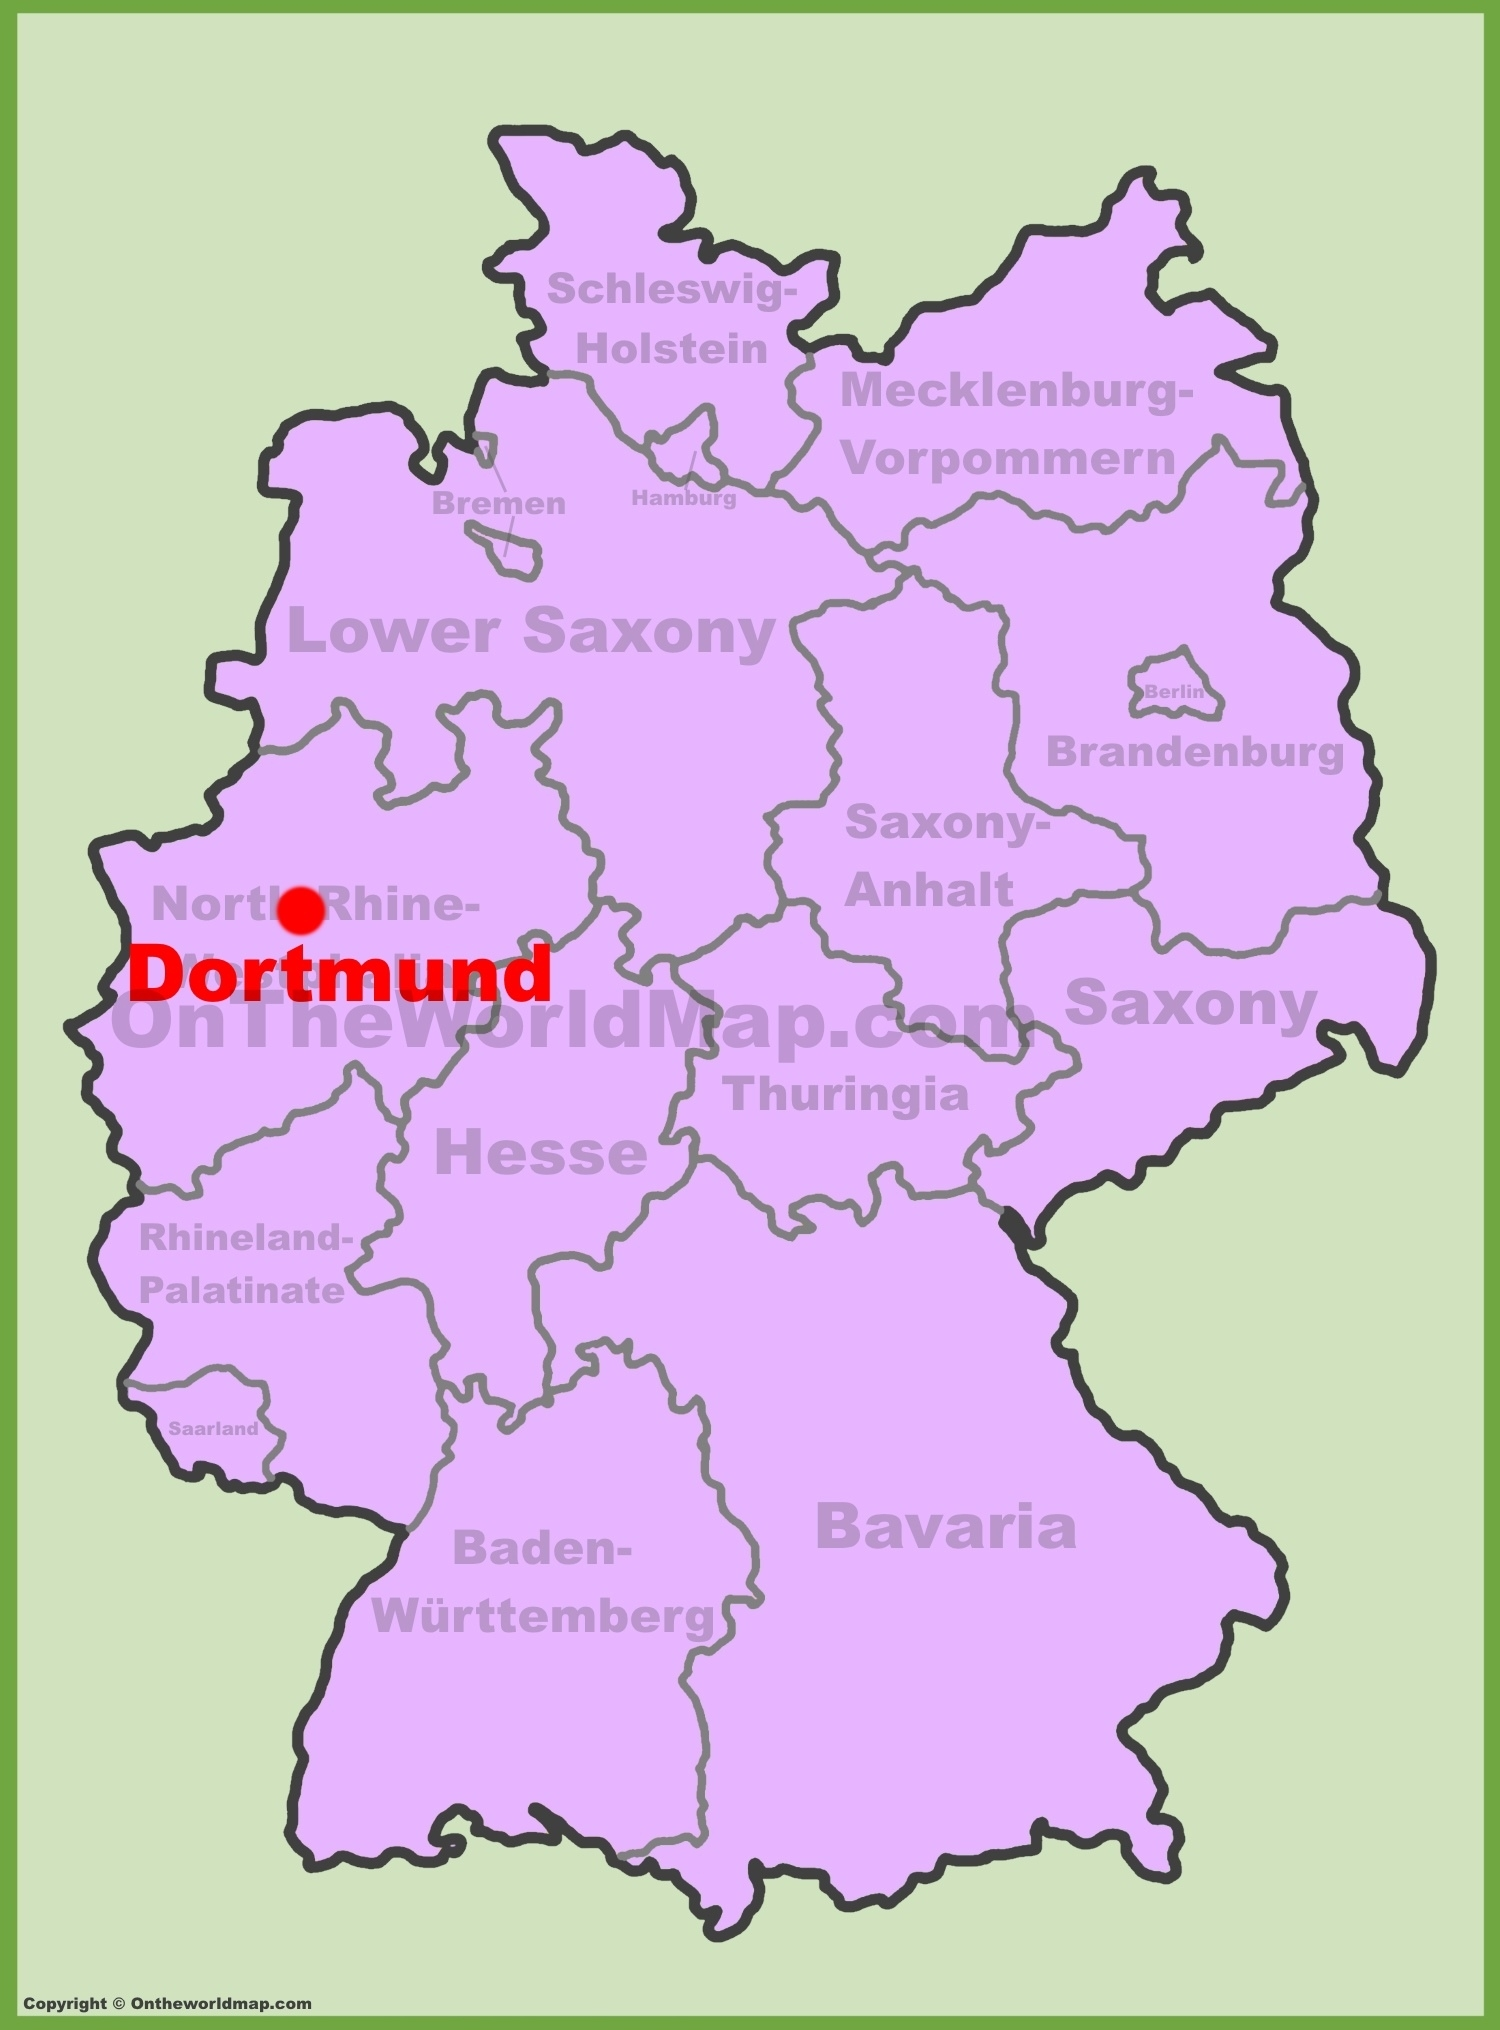 Dortmund Location On The Germany Map with Where Is Dortmund Germany On The Map